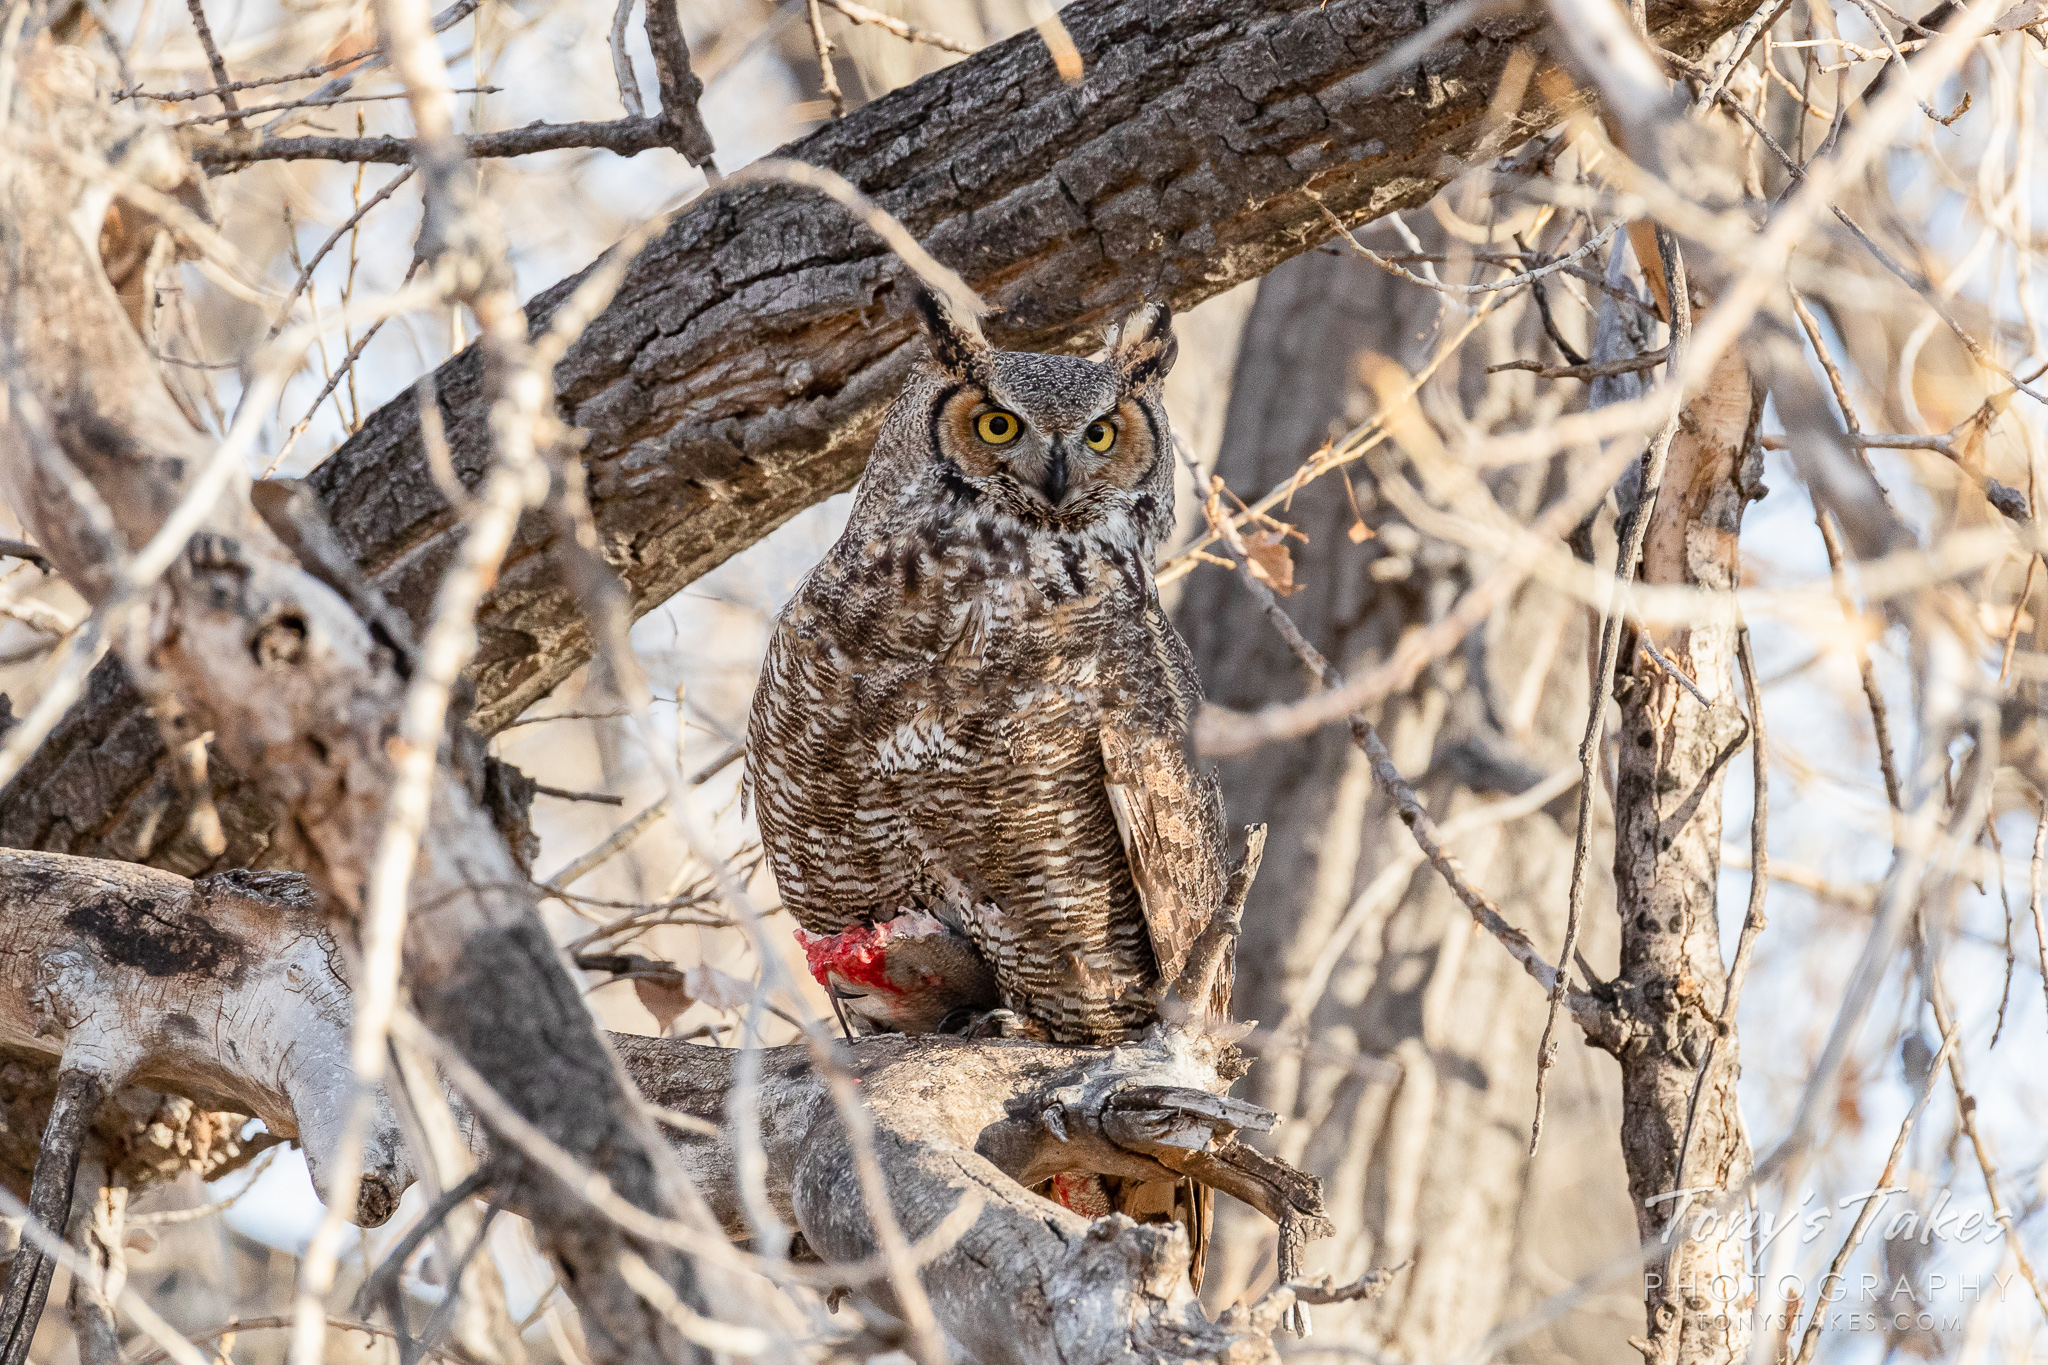 Great horned owl guards an unusual meal